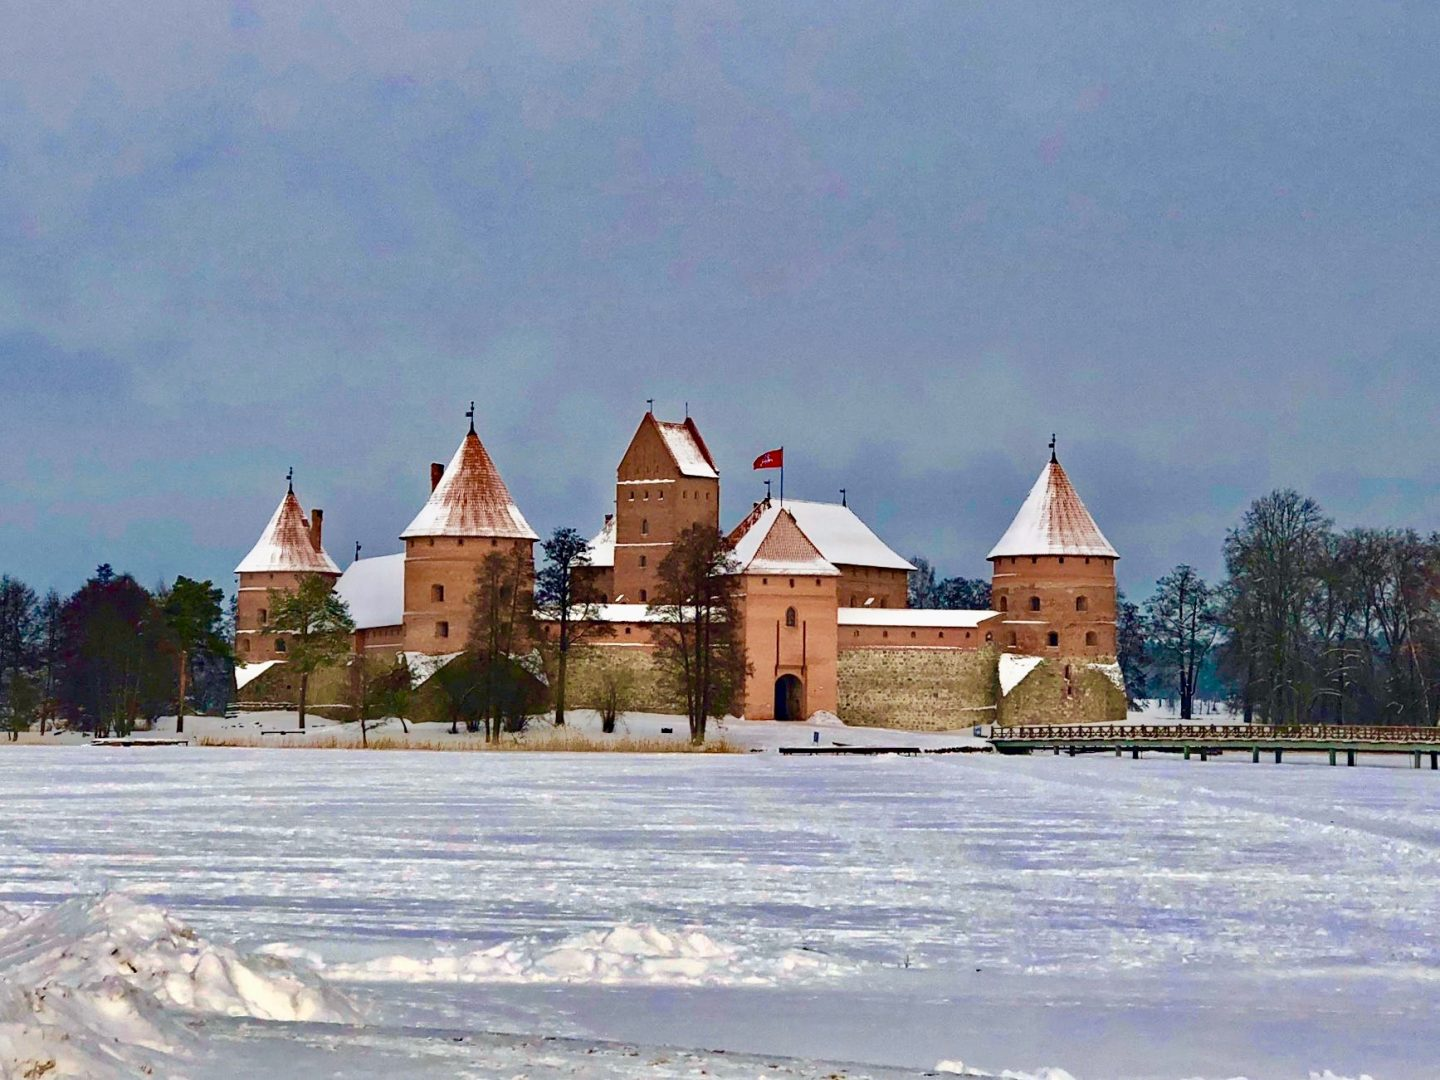 things to do in Vilnius in winter: Trakai castle surrounded by snow, with a moody grey sky behind